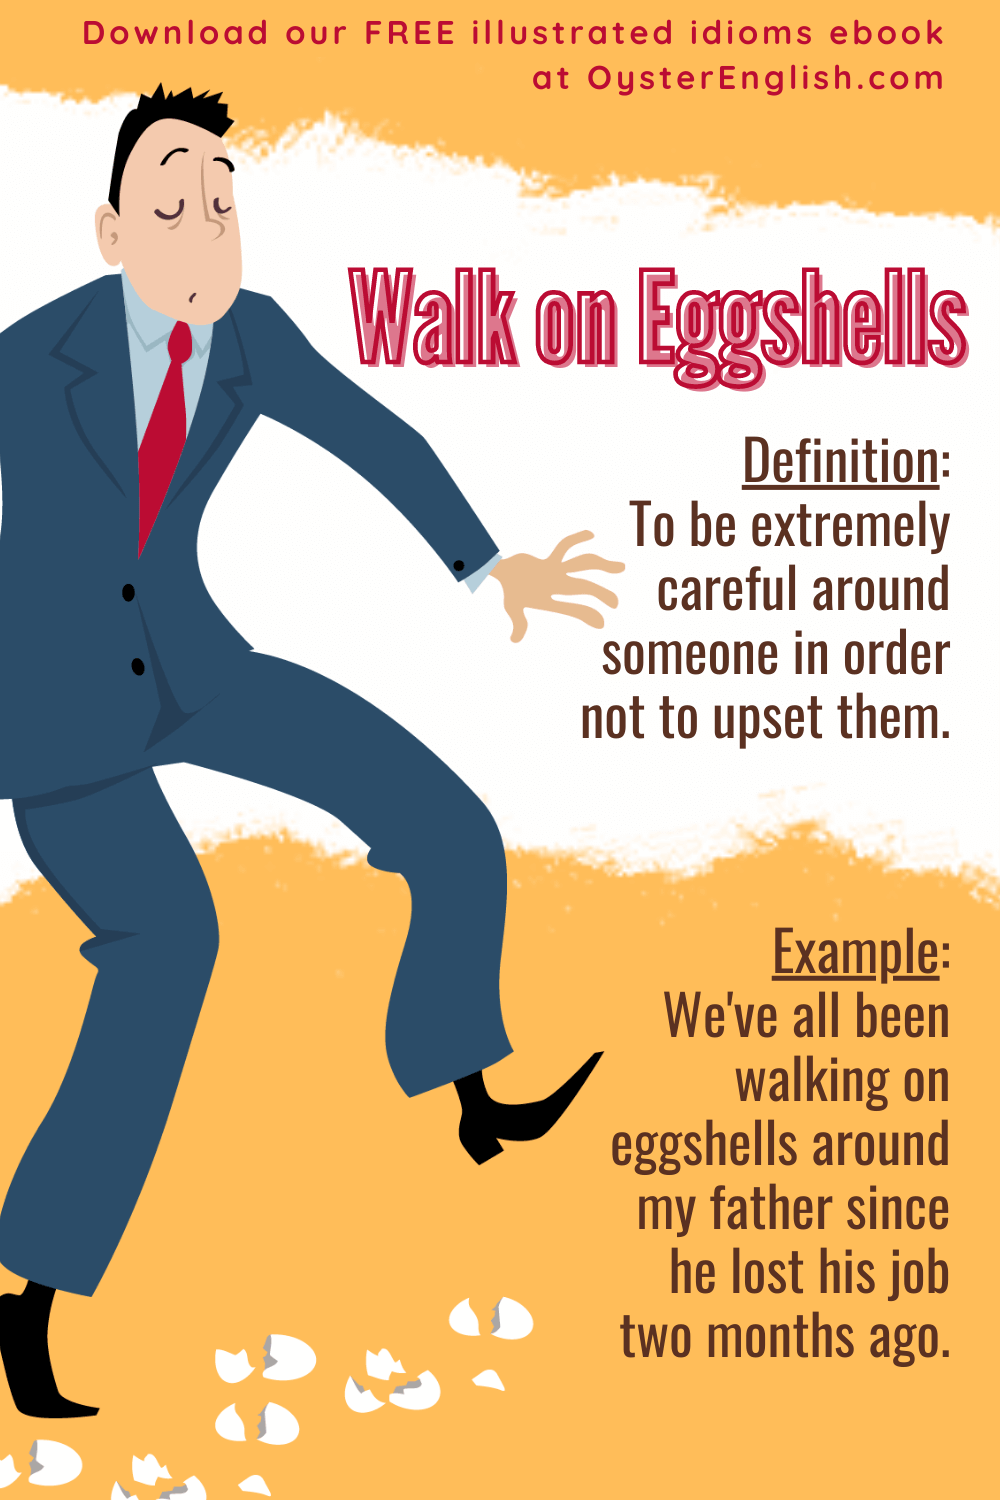 A man steps carefully over broken eggshells: We've all been walking on eggshells around my dad since he lost his job a few months ago.